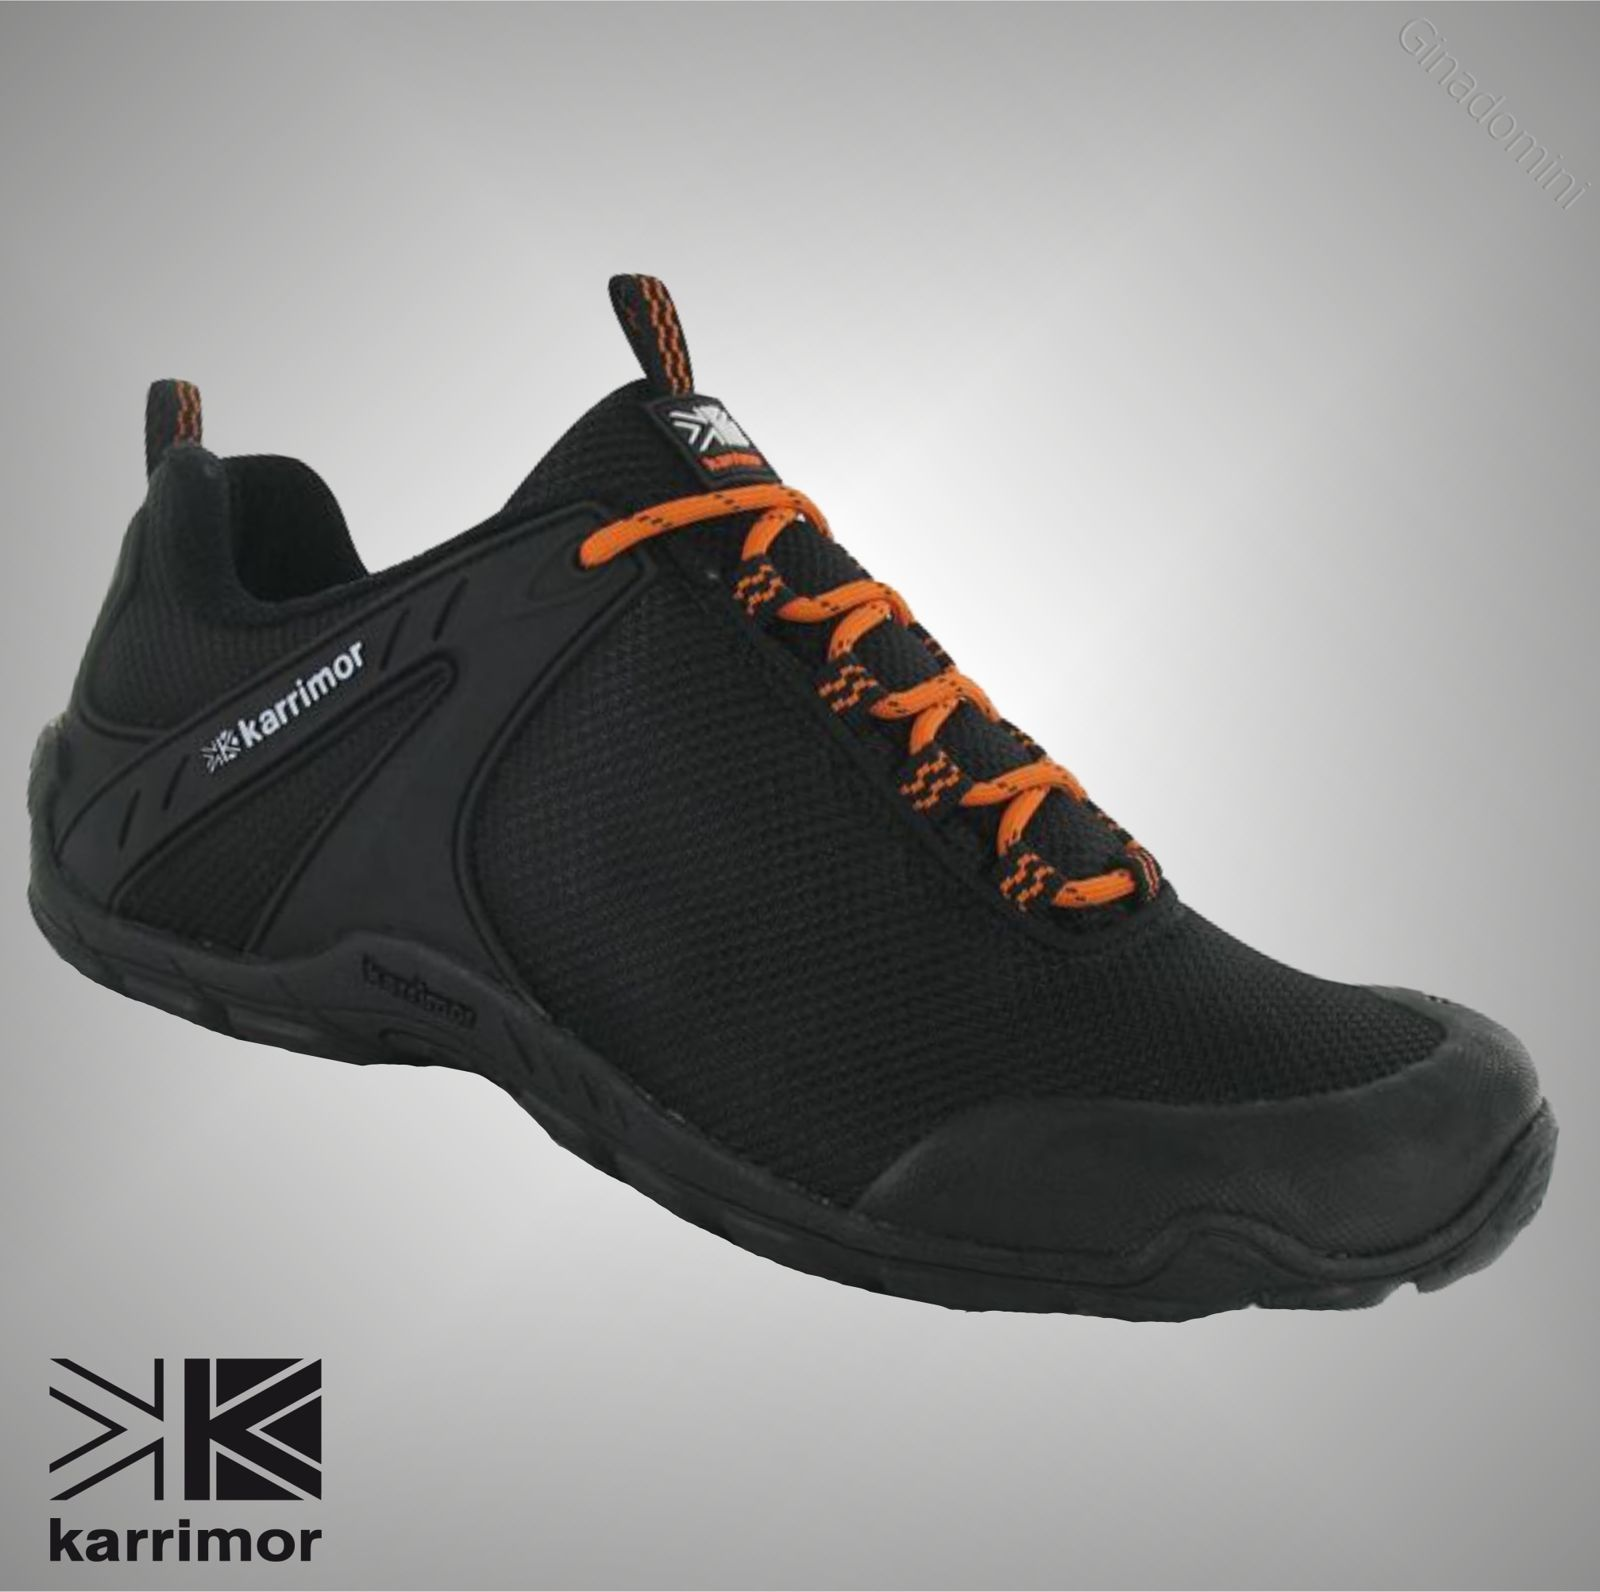 0fbec24f24e6 The design of the Karrimor Newton Mens Walking Shoes features a great and  rather unique look that is sure. Newton Mens Walking Shoes is built to last  with a ...